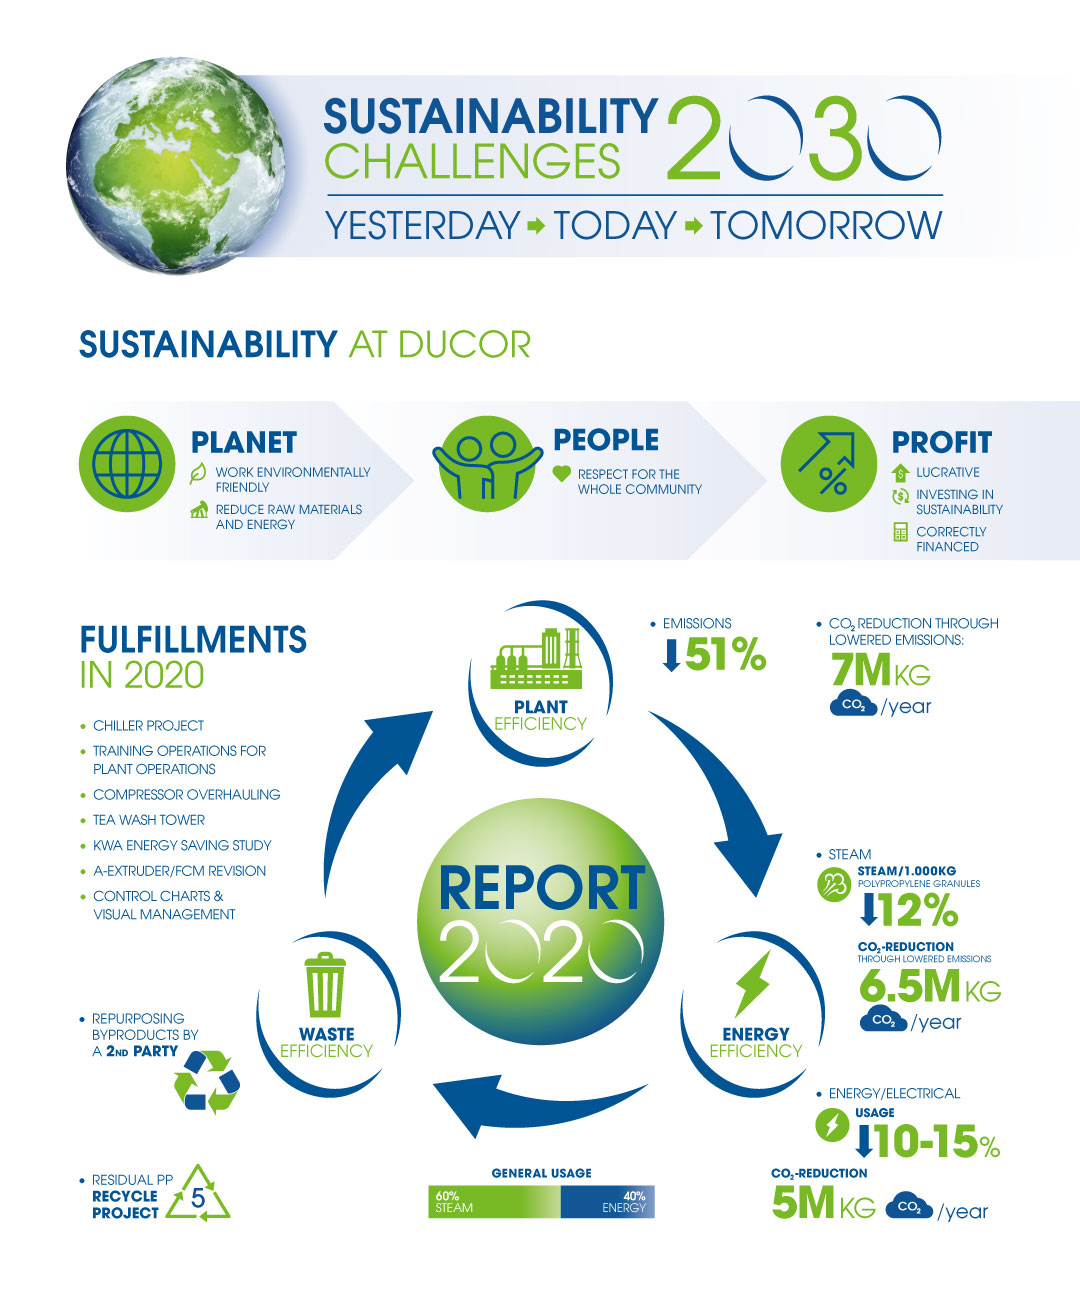 ducor-sustainability-challenges-infographic-en